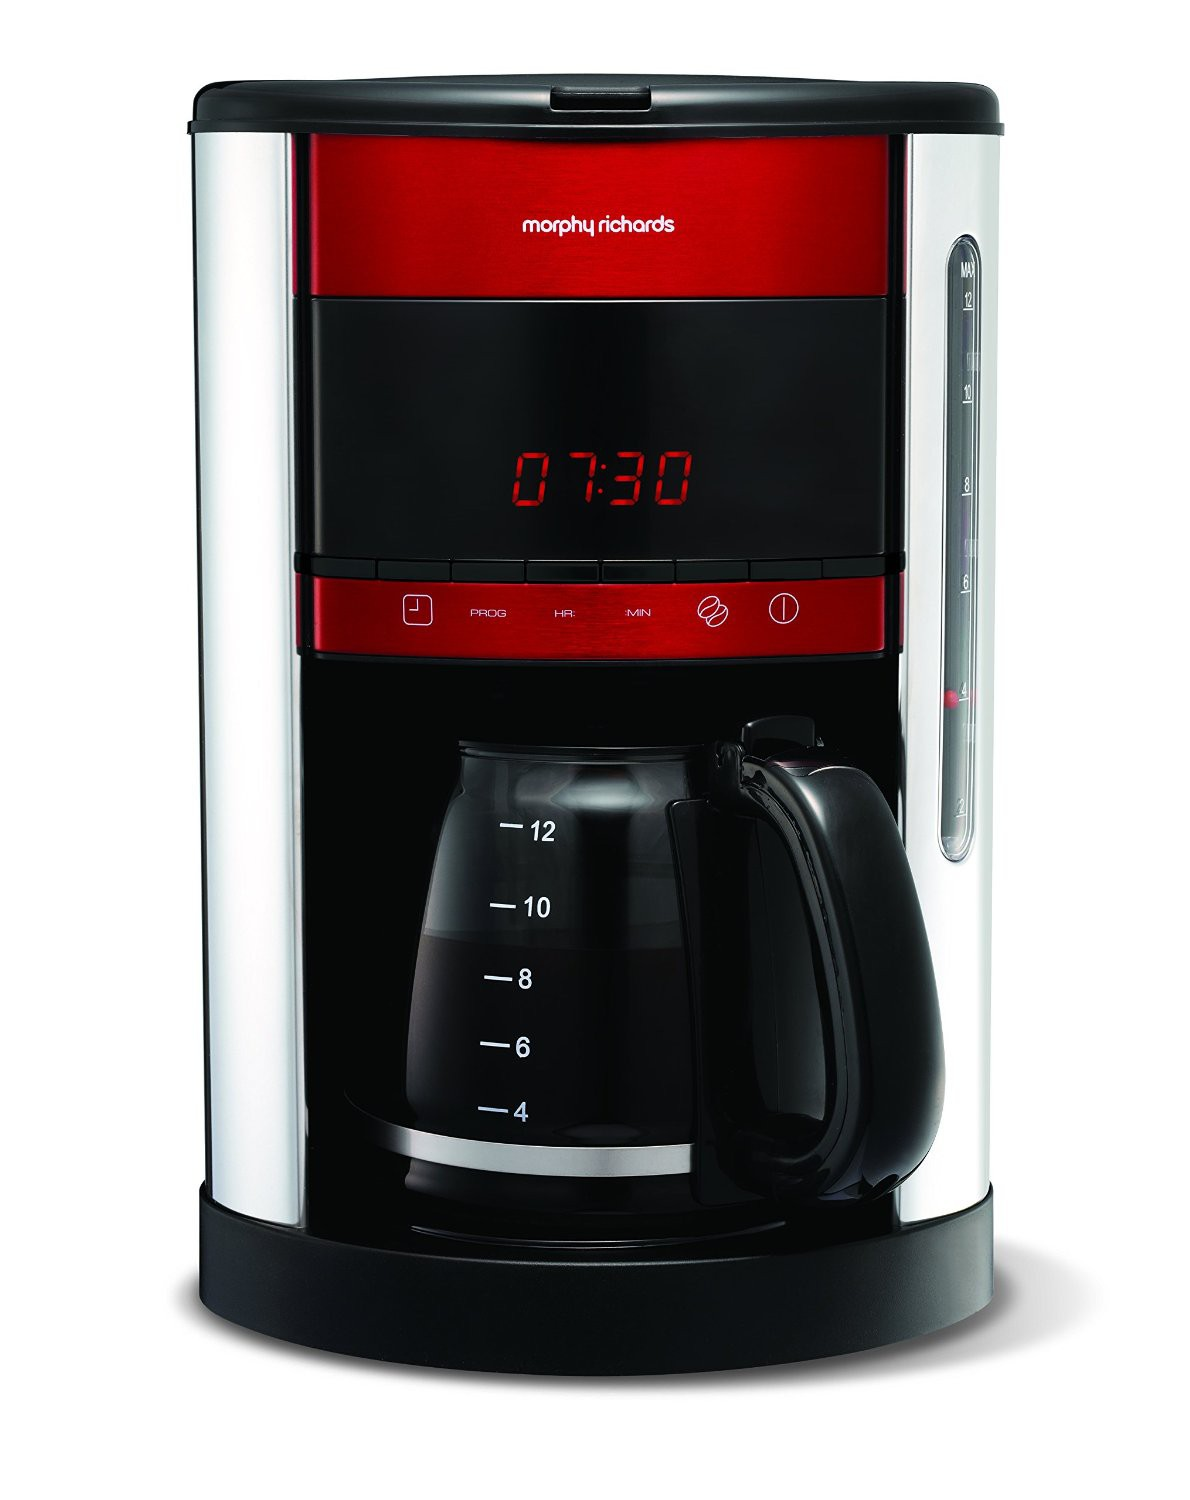 Morphy Richards Coffee Maker 47094 Instructions : Morphy Richards 162005 Digital Filter Coffee Maker Machine 12 Cup Capacity Red eBay